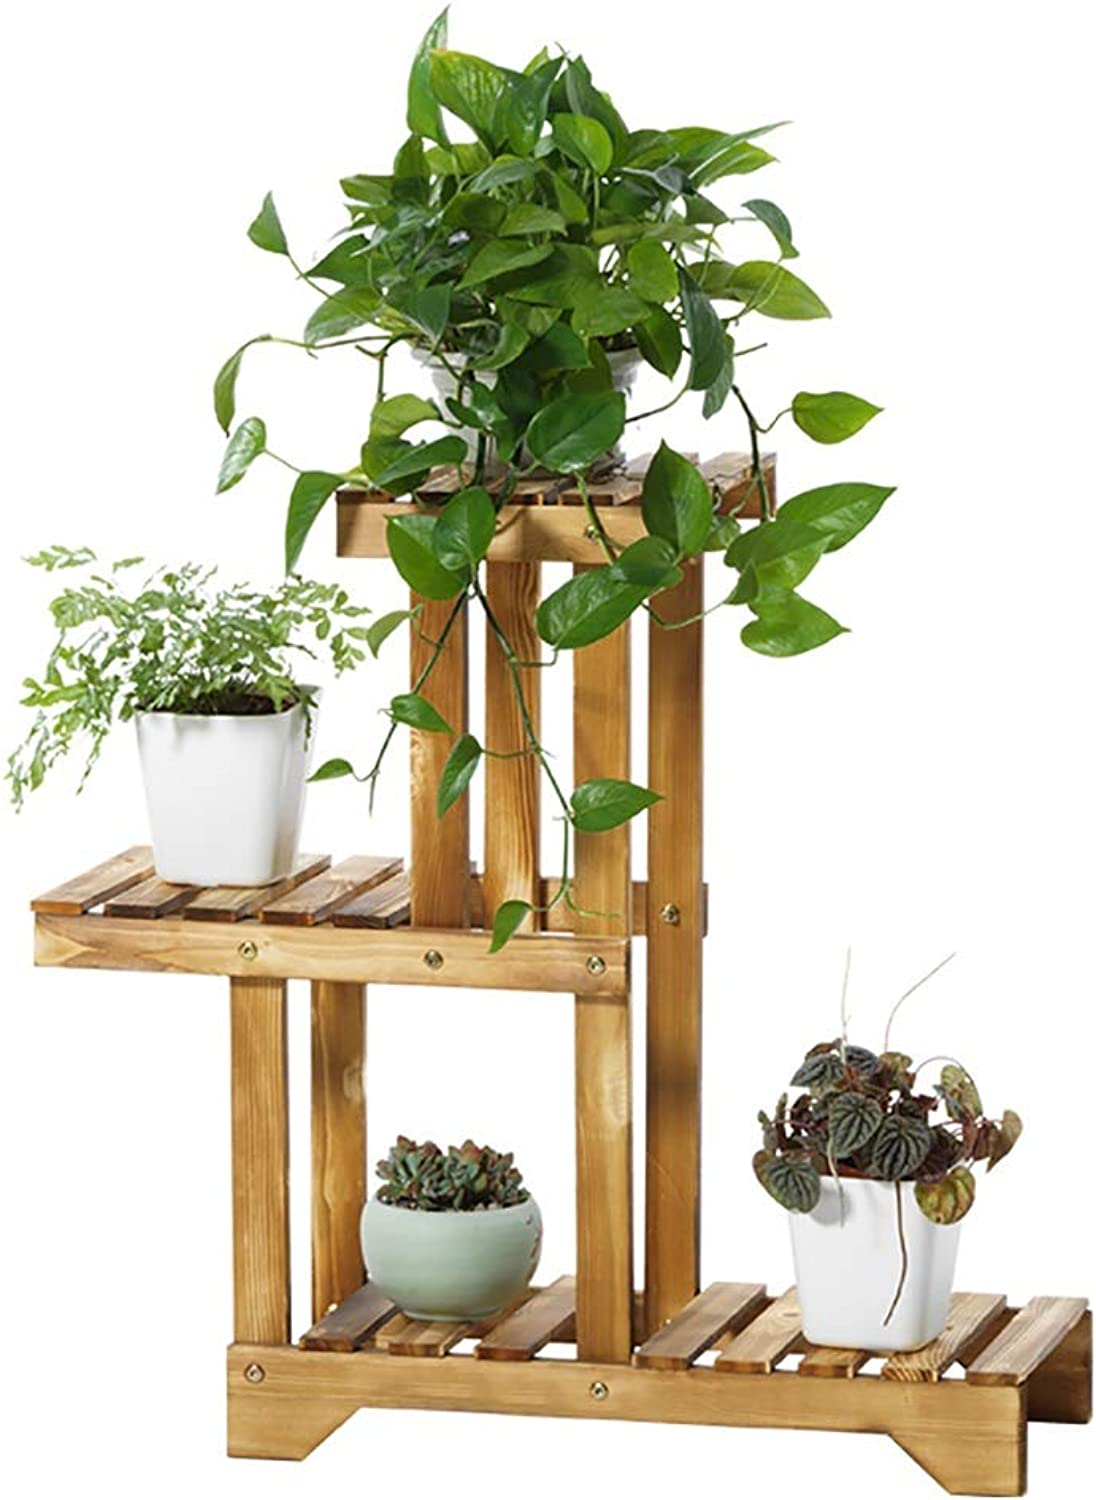 Hua Wooden Multi-Layer Flower Stand, Living Room Balcony Outdoor Plant Display Stand Indoor Three-Layer Floor Flower Pot Rack Decoration Frame